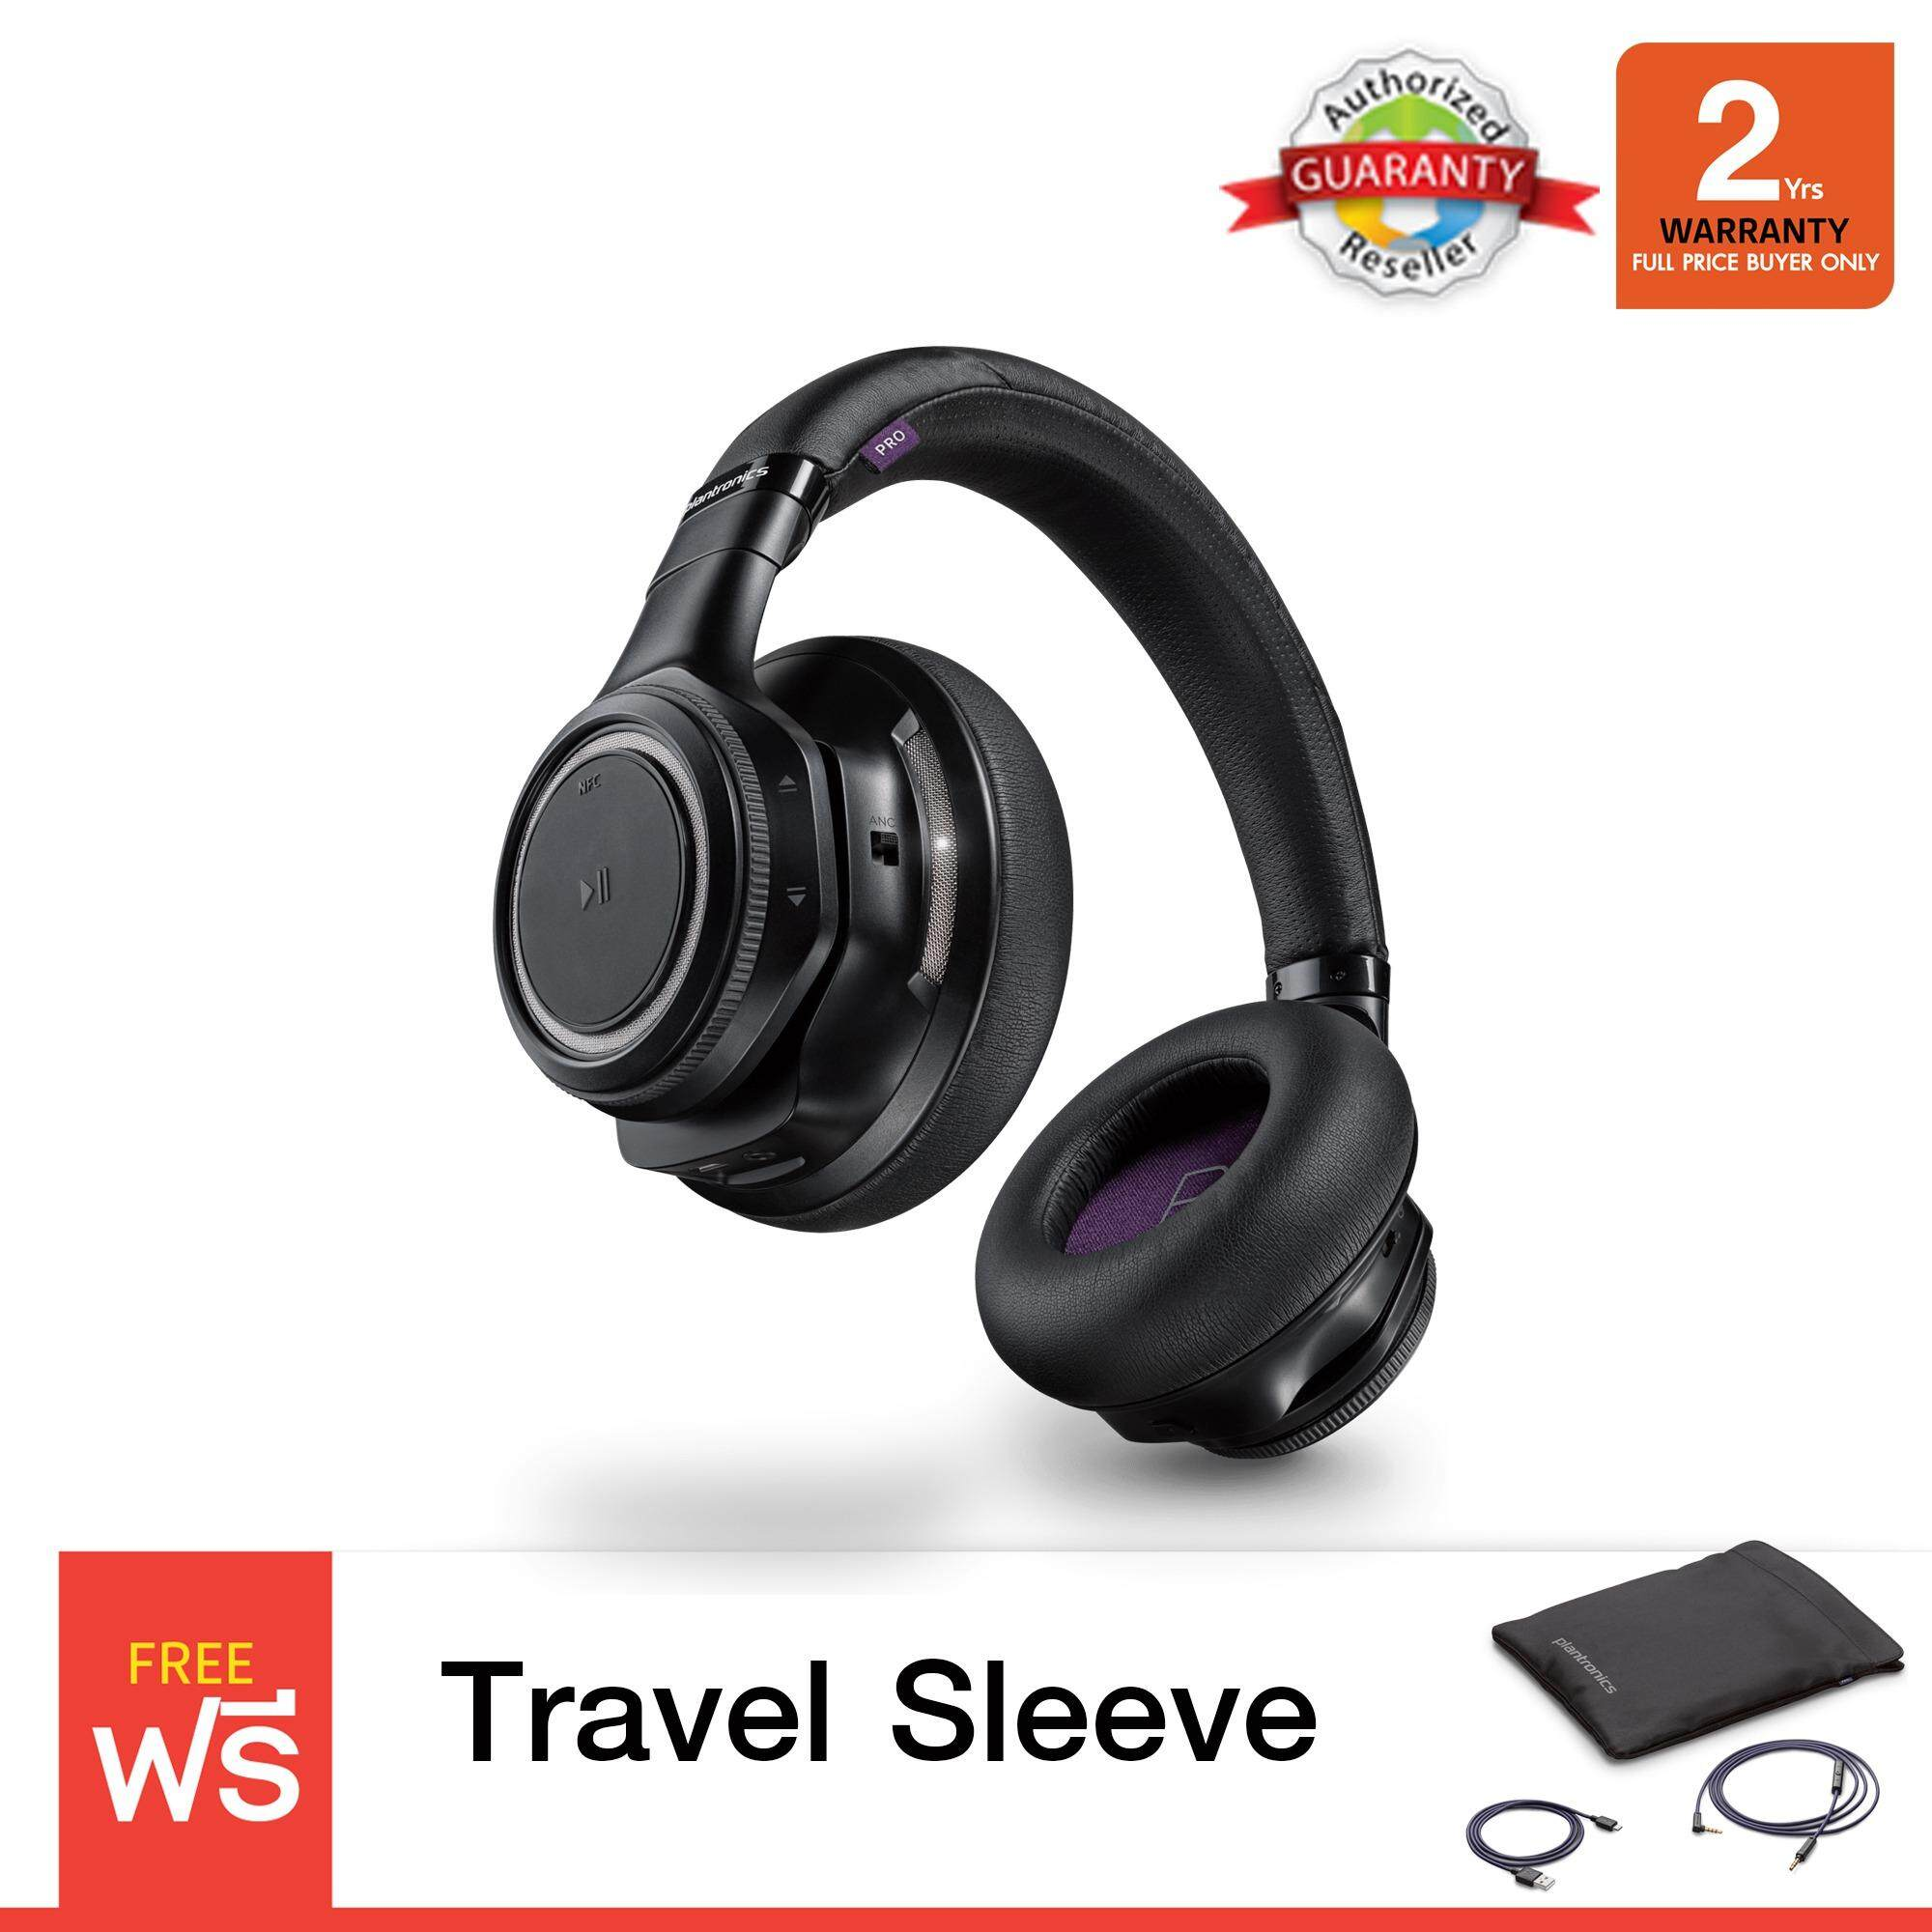 Plantronics BackBeat PRO Free travel sleeve 2 Years Warranty